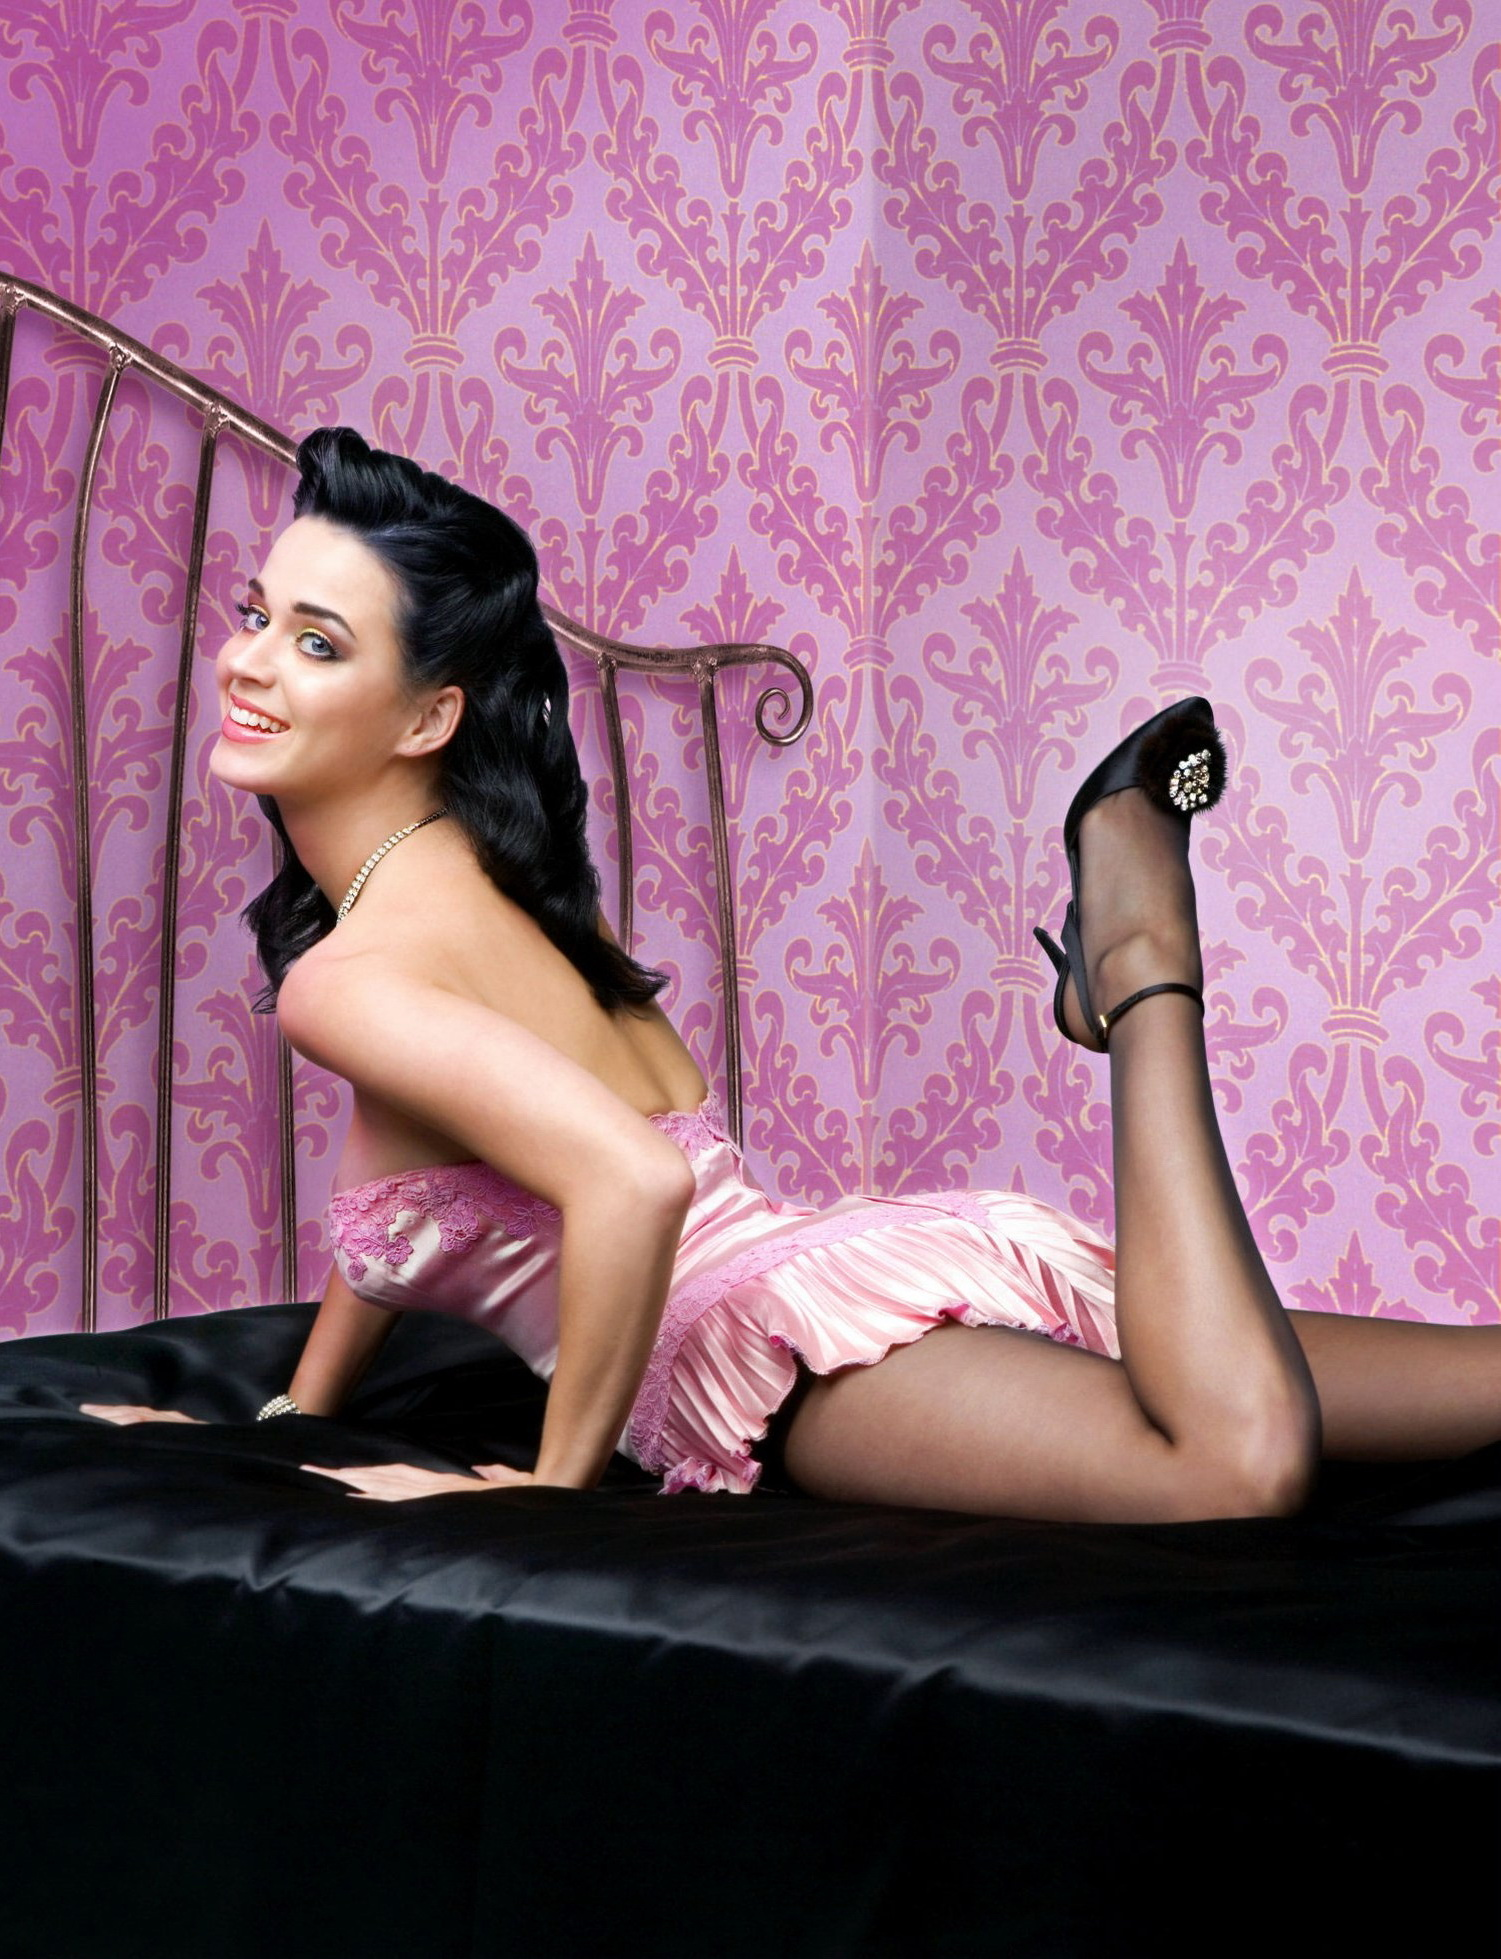 Katy Perry Photoshoot by Scott Nathan